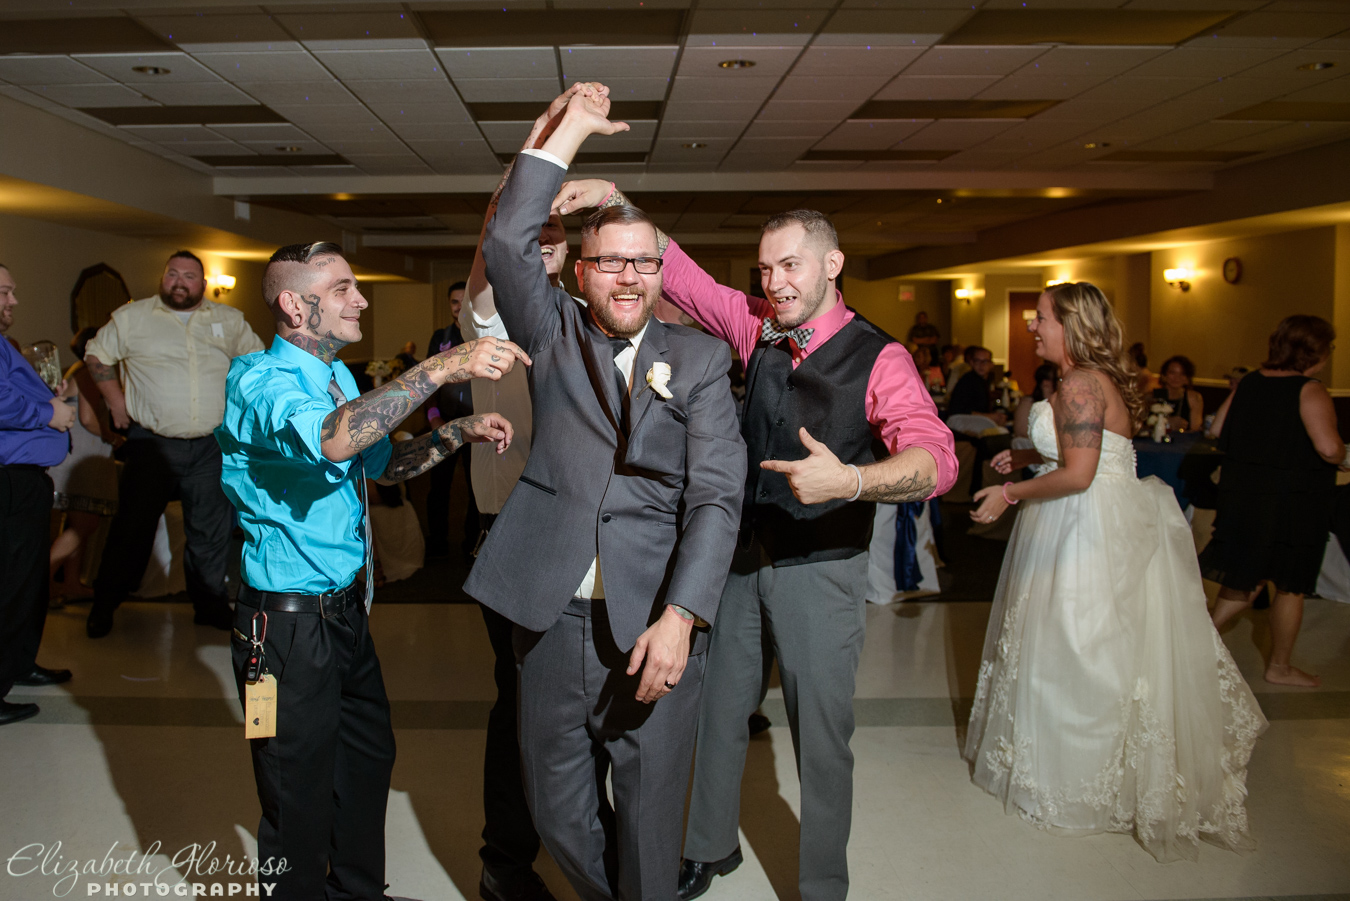 Zakovec_Wedding_Glorioso_Photography_Cleveland-152